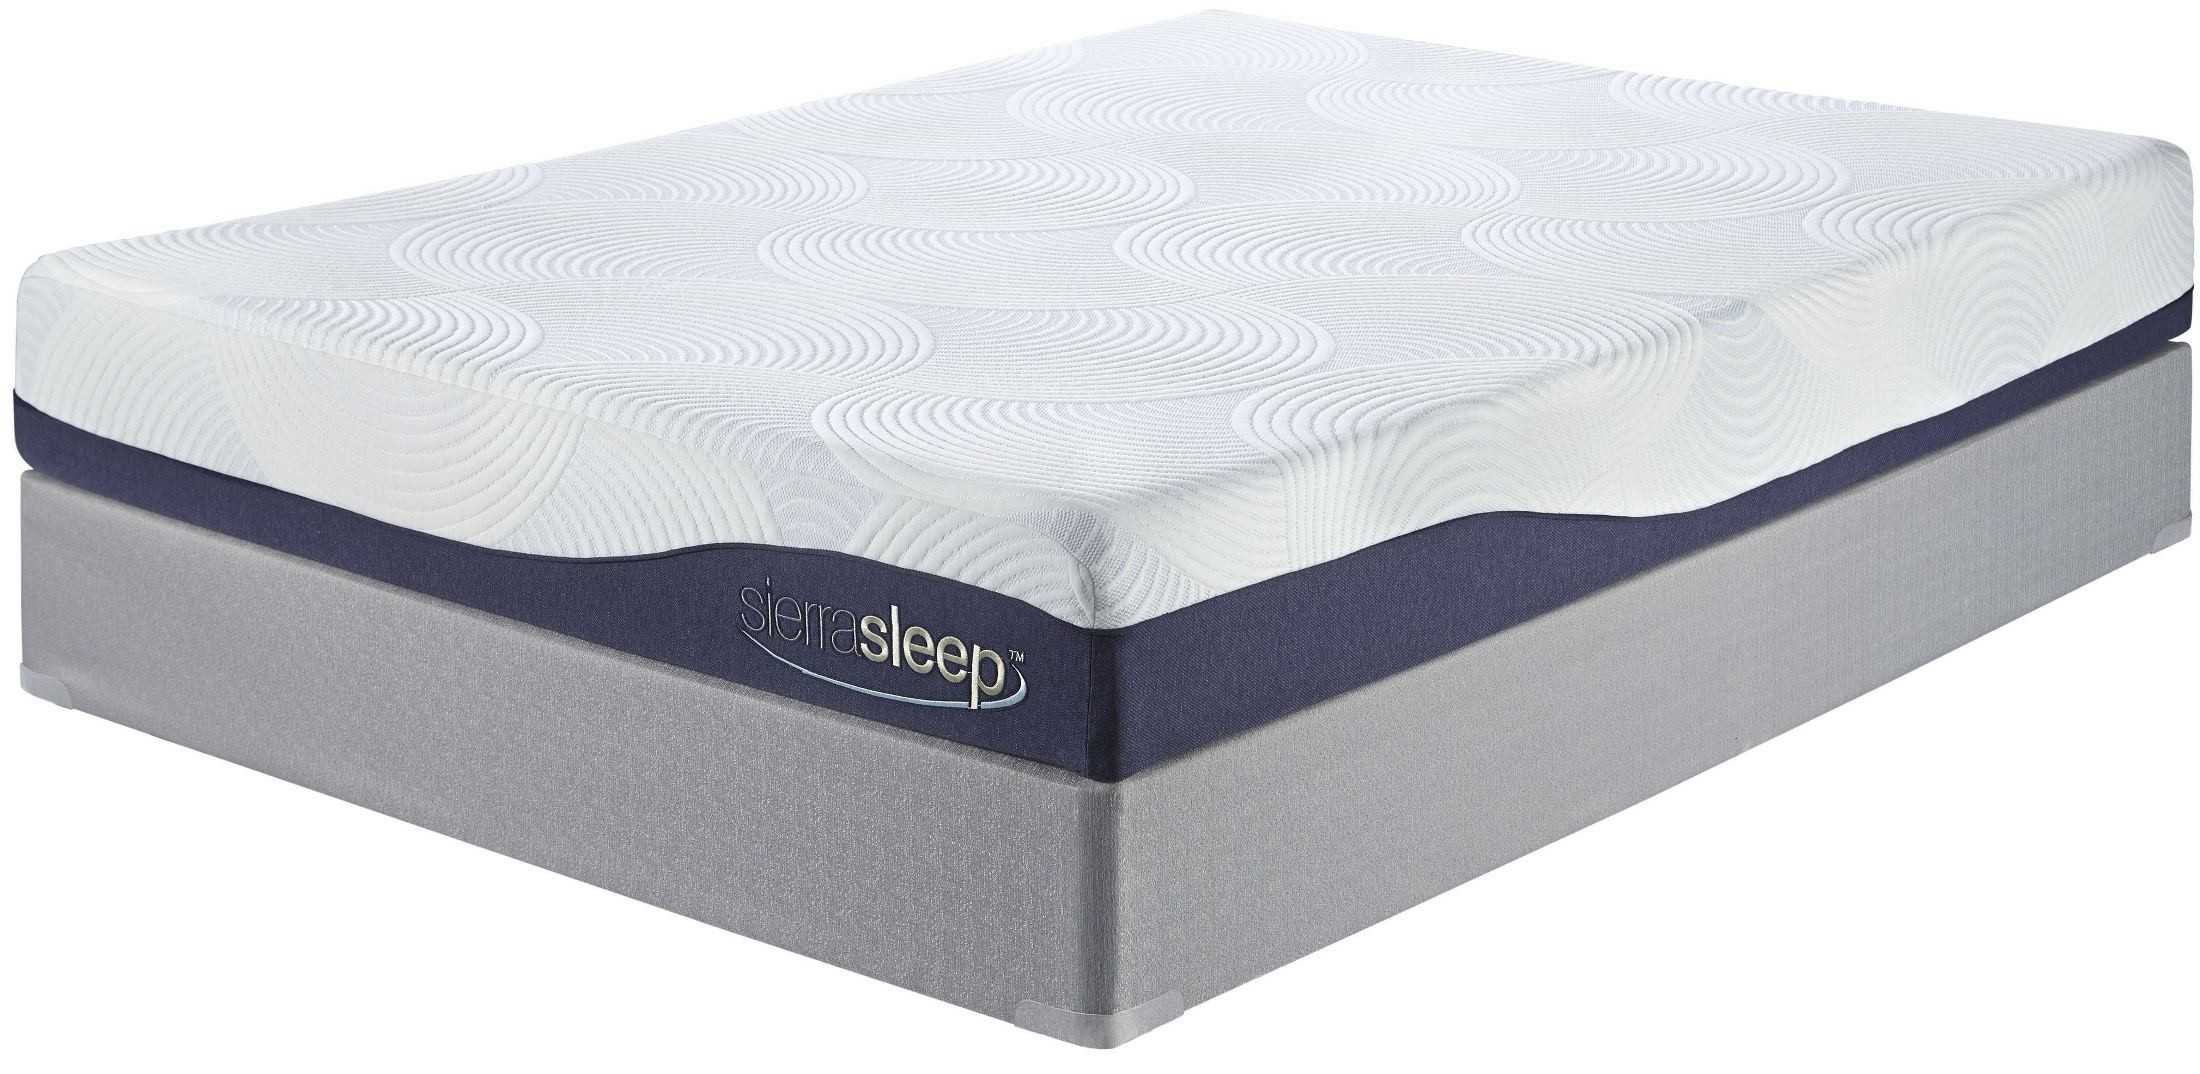 9 Inch Gel Memory Foam White Cal King Mattress From Ashley M97251 Coleman Furniture